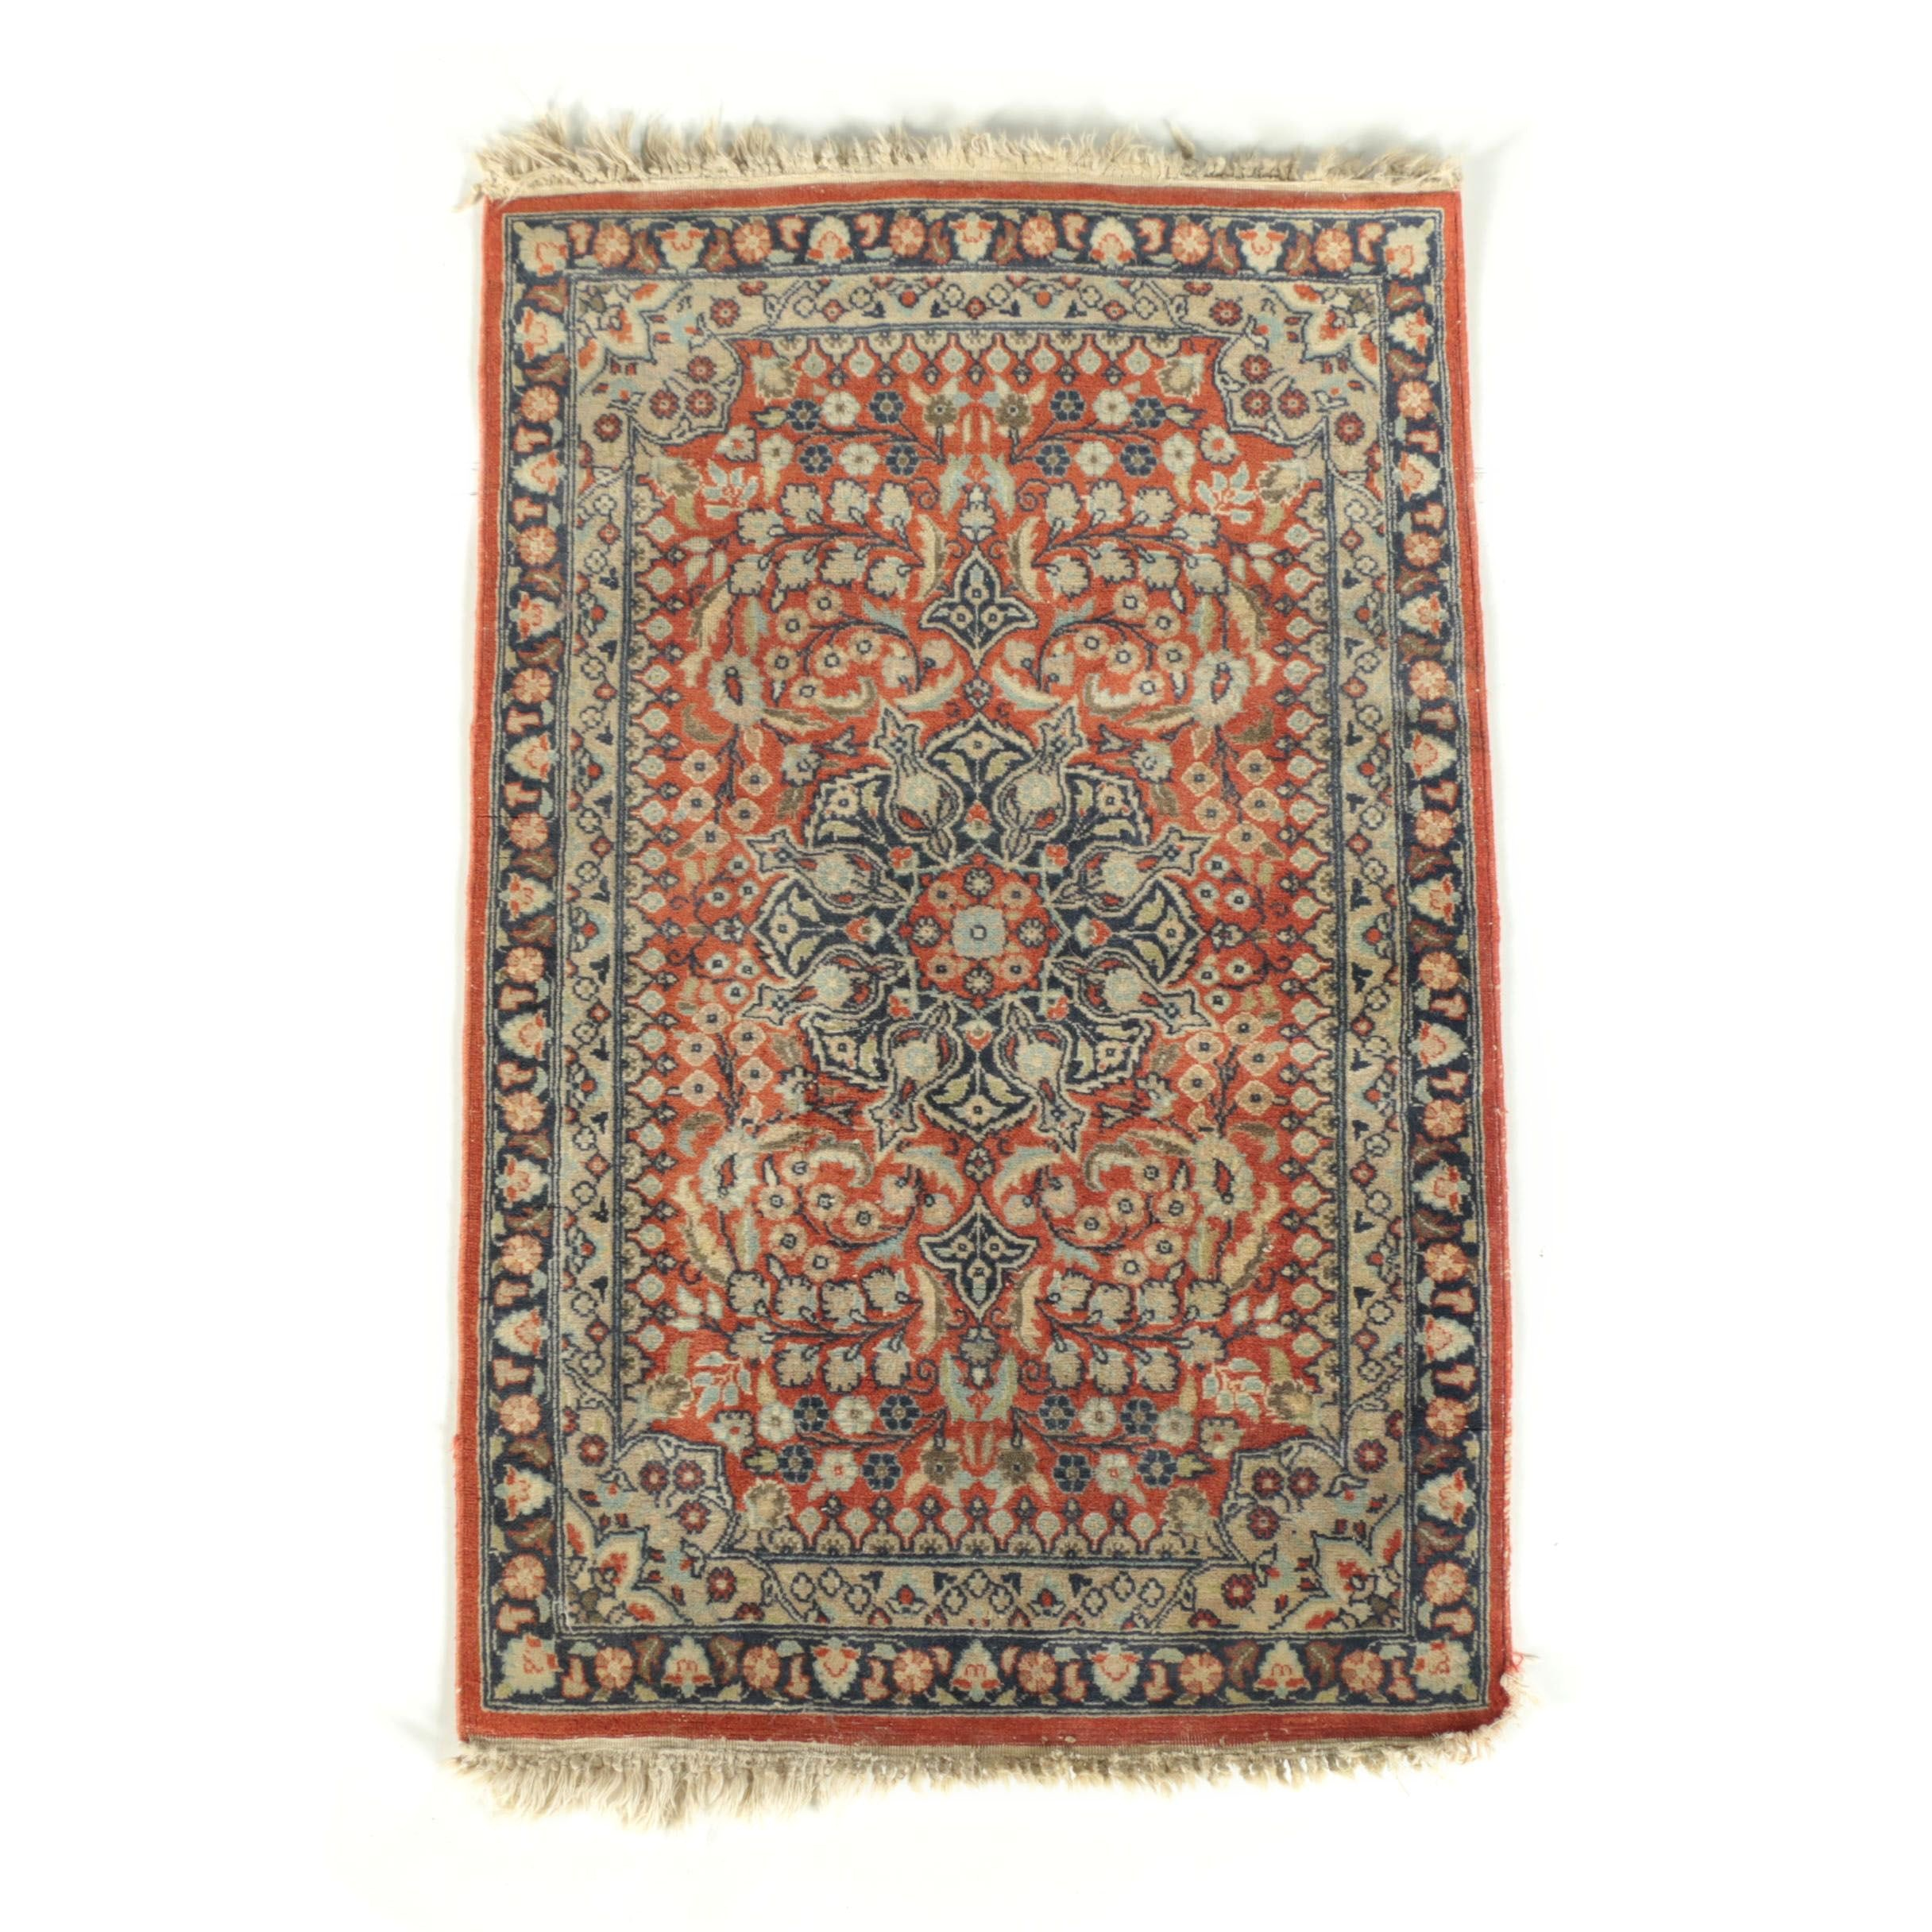 Semi-Antique Hand-Knotted Persian Sarouk Wool Rug